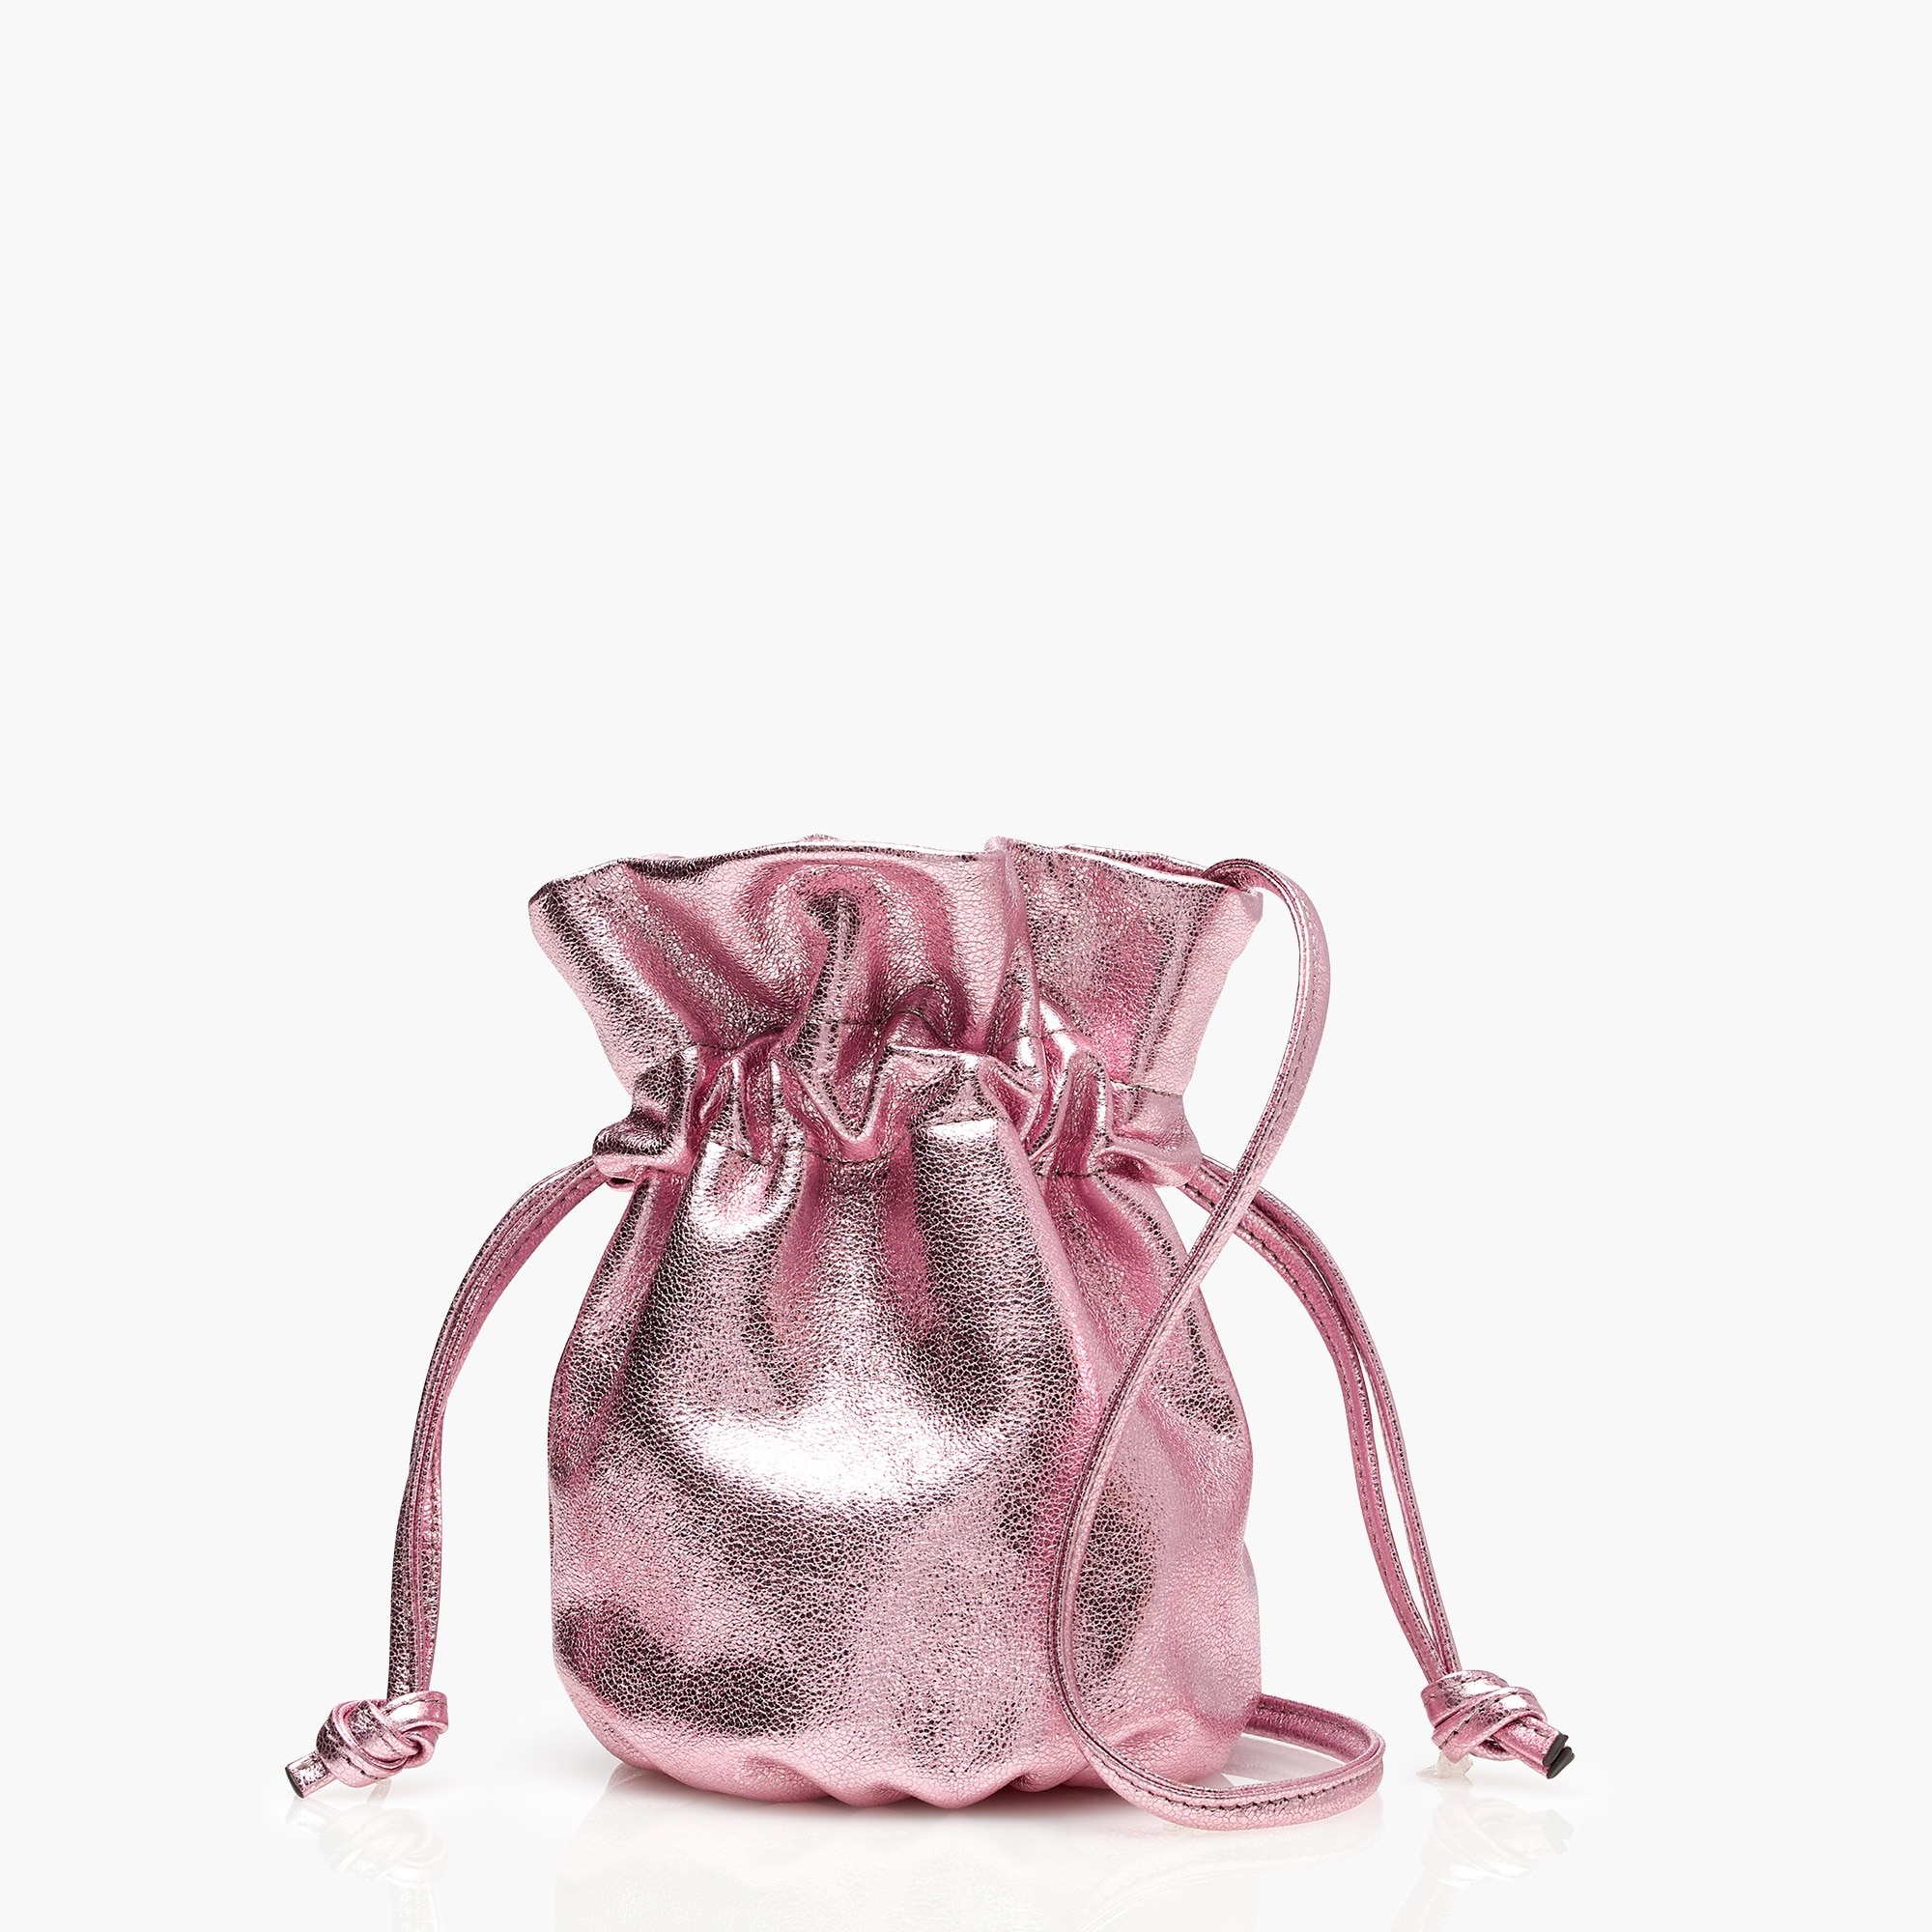 Image 1 for Mini crossbody pouch in metallic blush